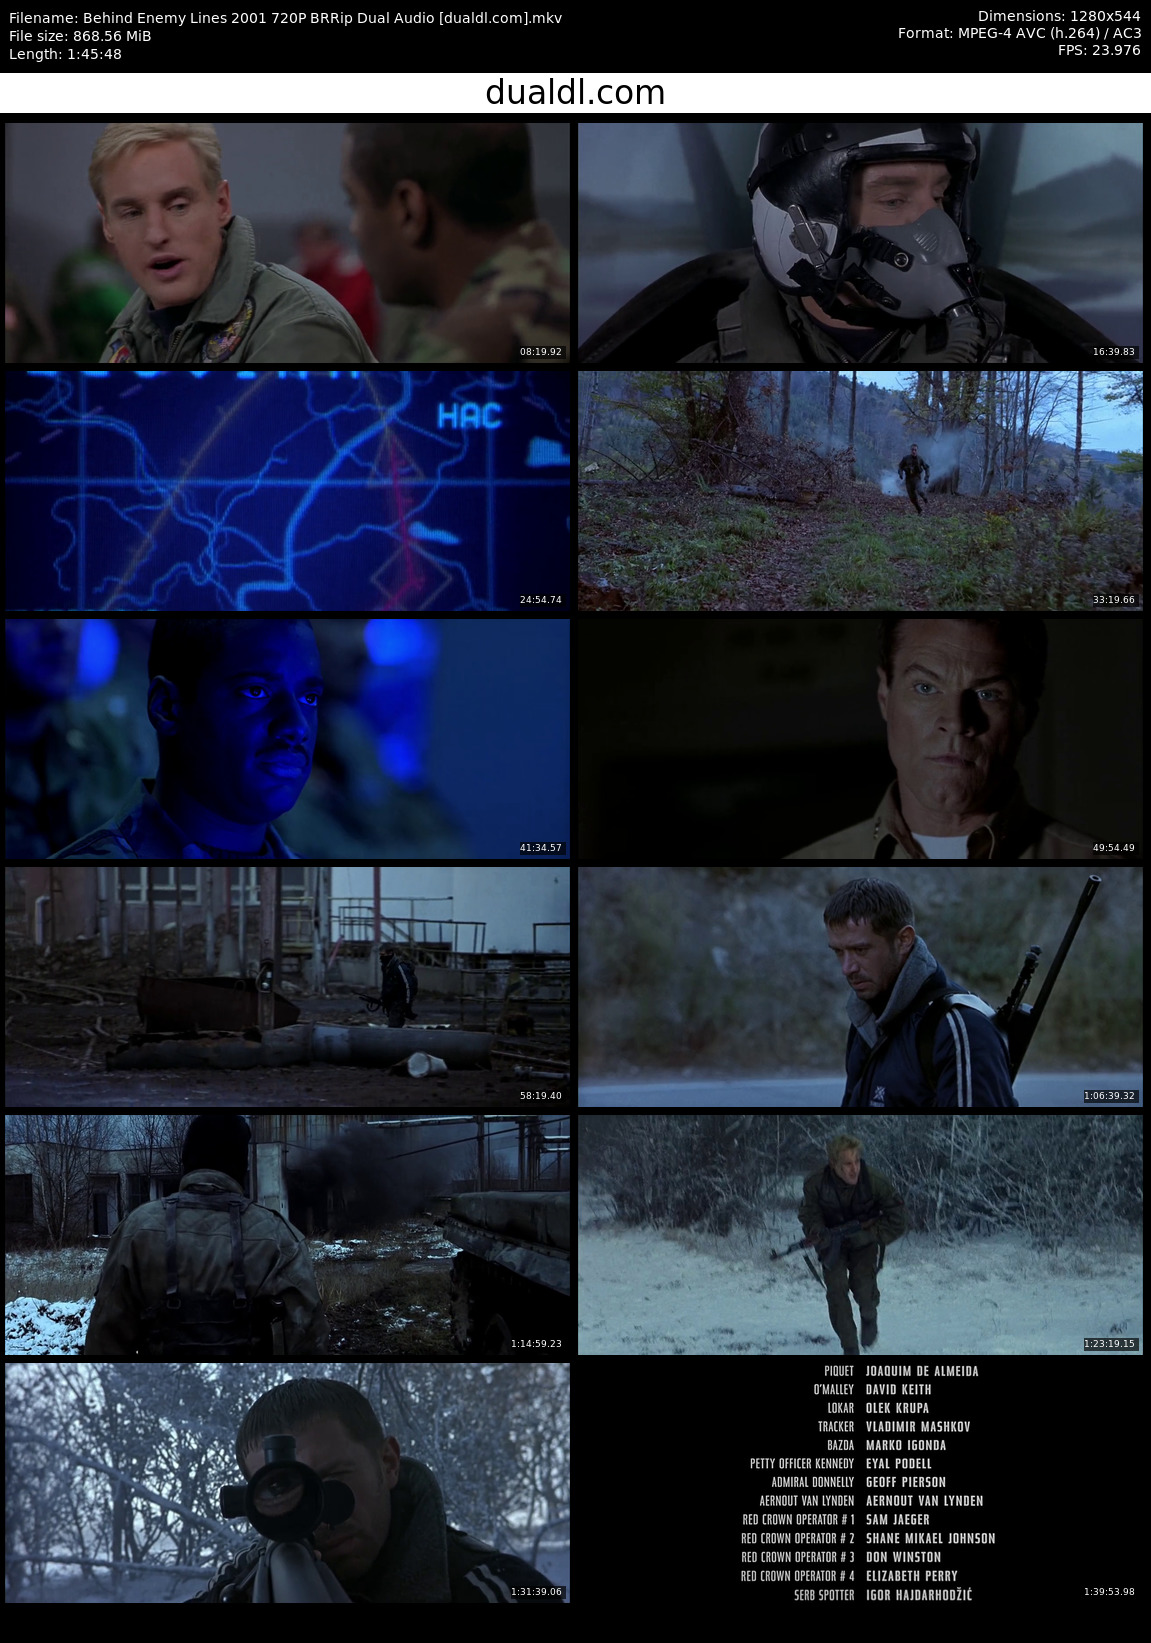 Behind Enemy Lines 2001 720P BRRip Dual Audio